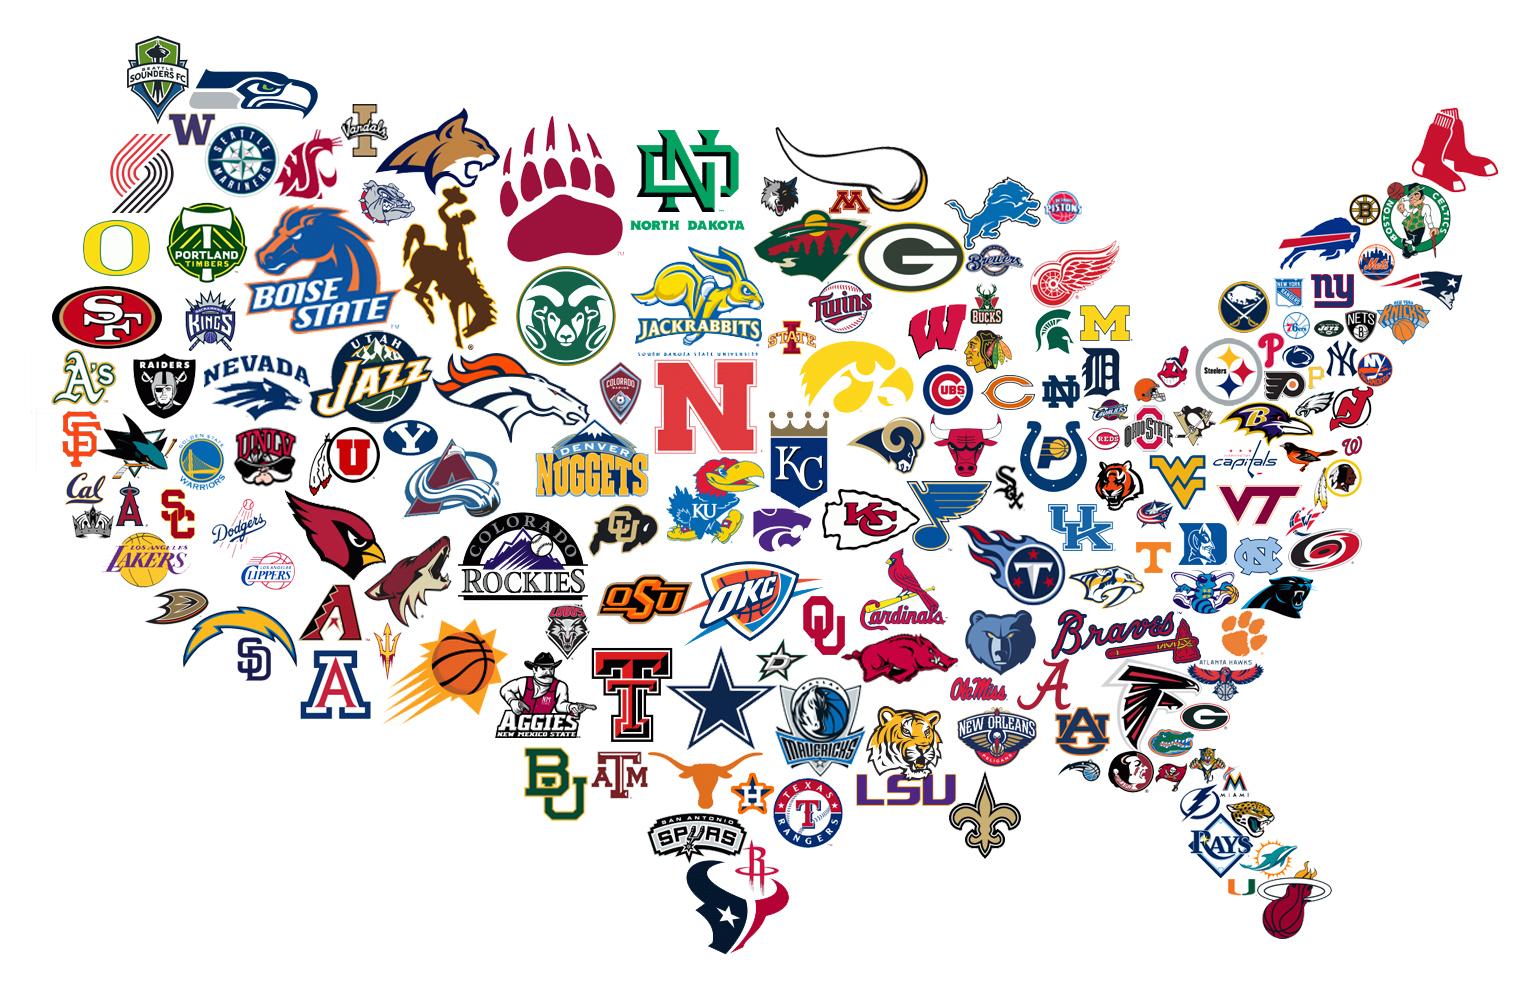 UNITED STATES OF SPORTS MAP Diamond Painting Kit Paint with Diamonds on usa map decor, usa map plane, usa map franklin, usa map with features, usa map vinyl, usa map chalkboard, usa map texture, usa map area rugs, usa map graffiti, usa map puzzle pieces, usa map detail, usa map water, usa map decal, usa map mural, usa map sheet, usa map curtains, usa map powerpoint, usa map food, usa map wrapping paper, usa map flag,